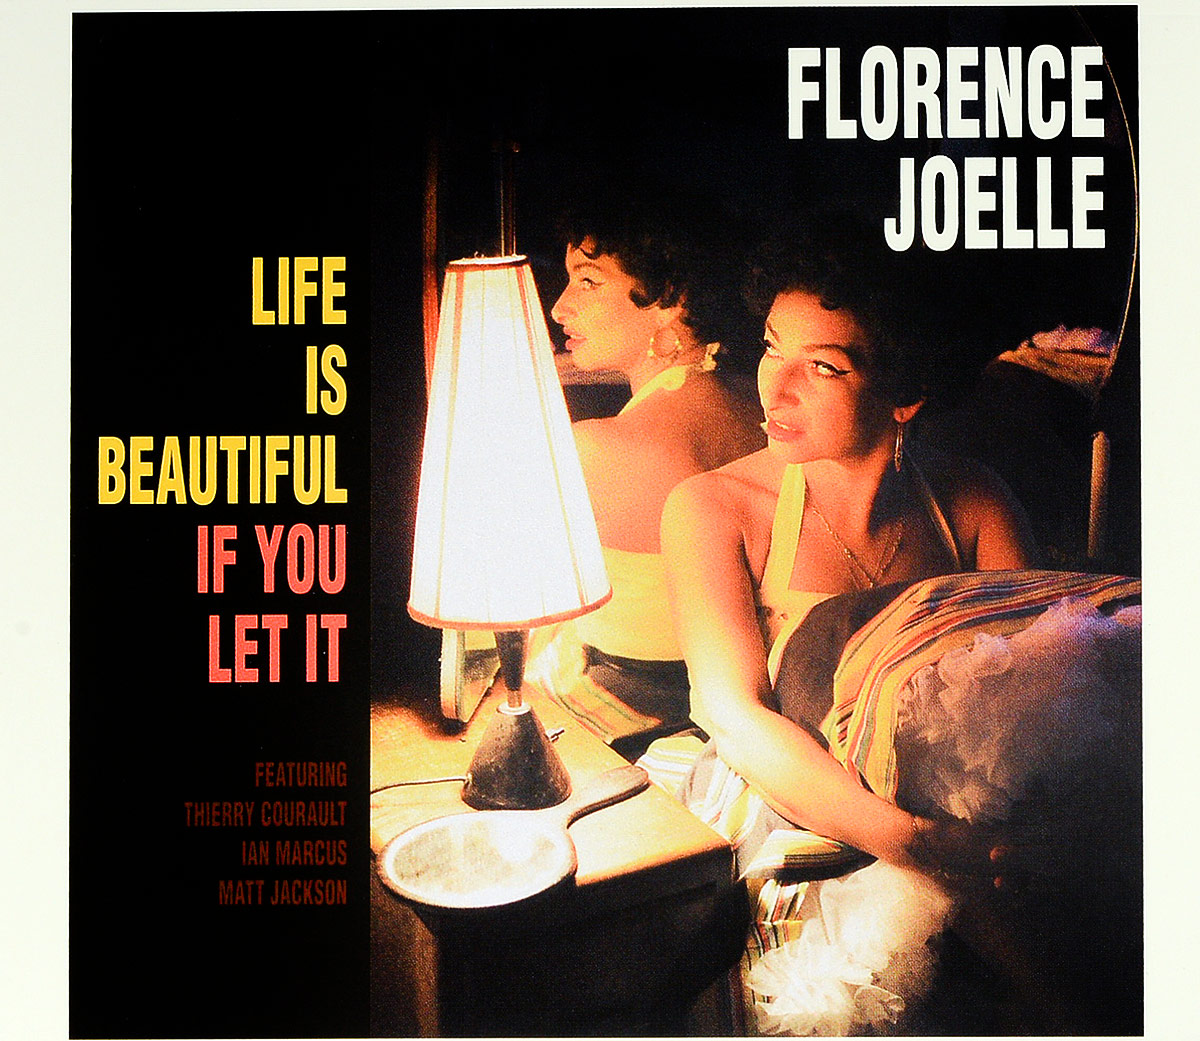 Флоренс Джоэлл Florence Joelle. Life Is Beautiful If You Let It